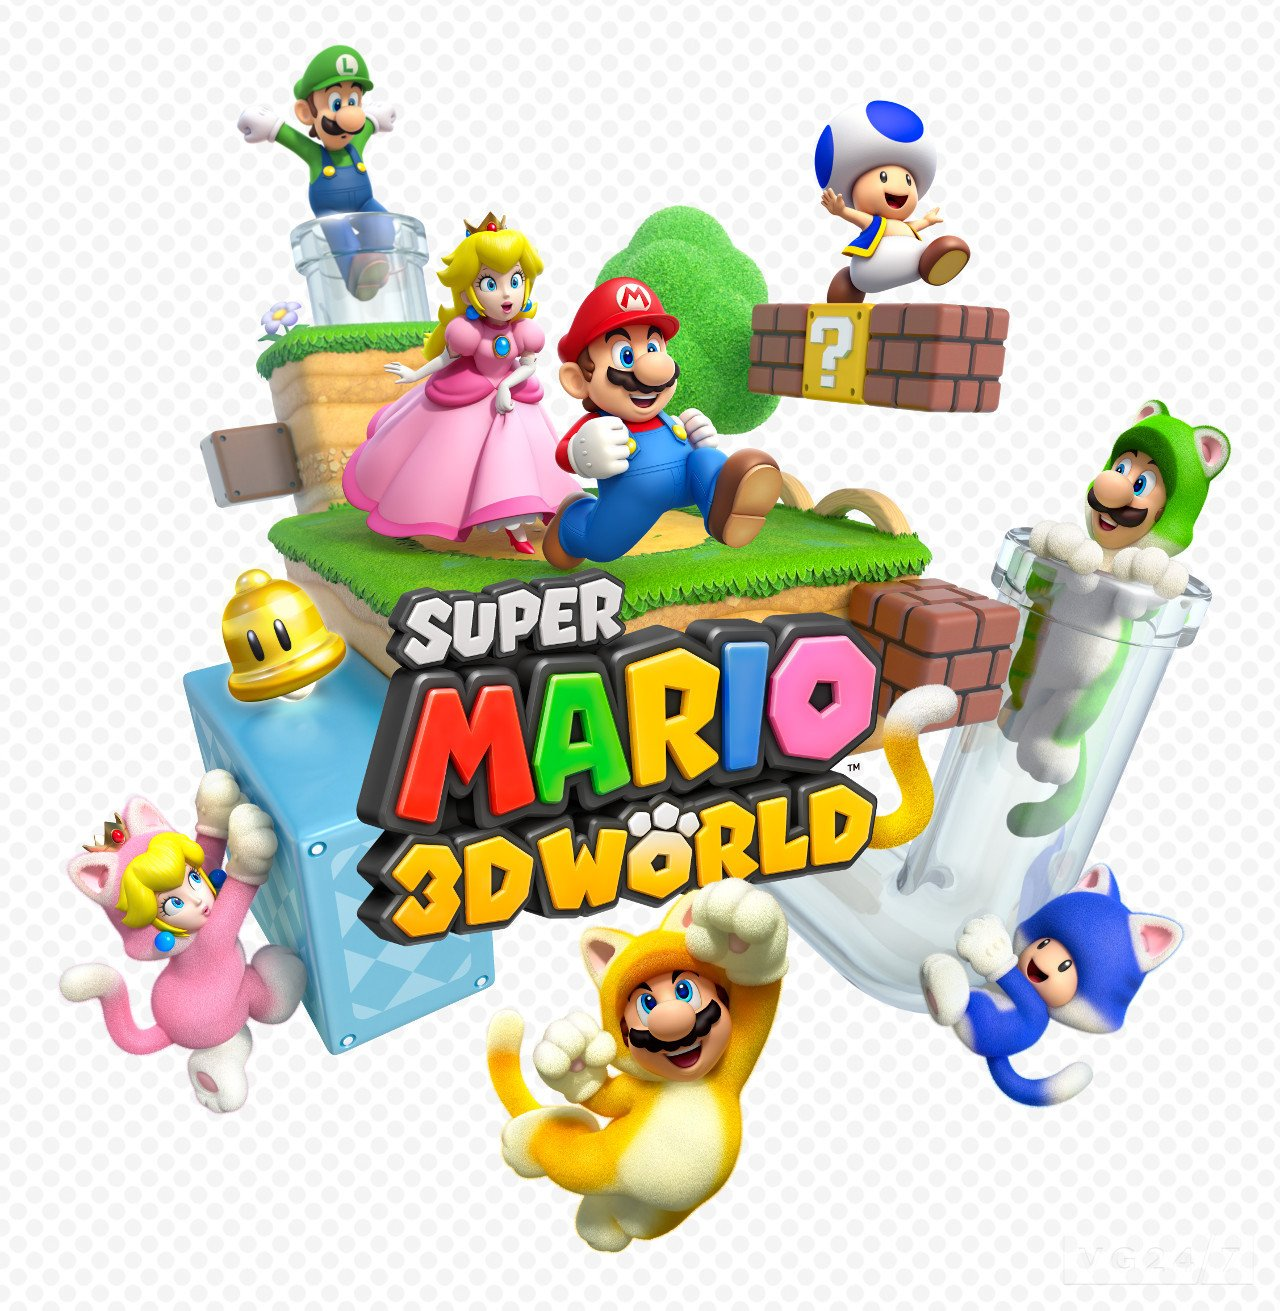 Box art - Super Mario 3D World